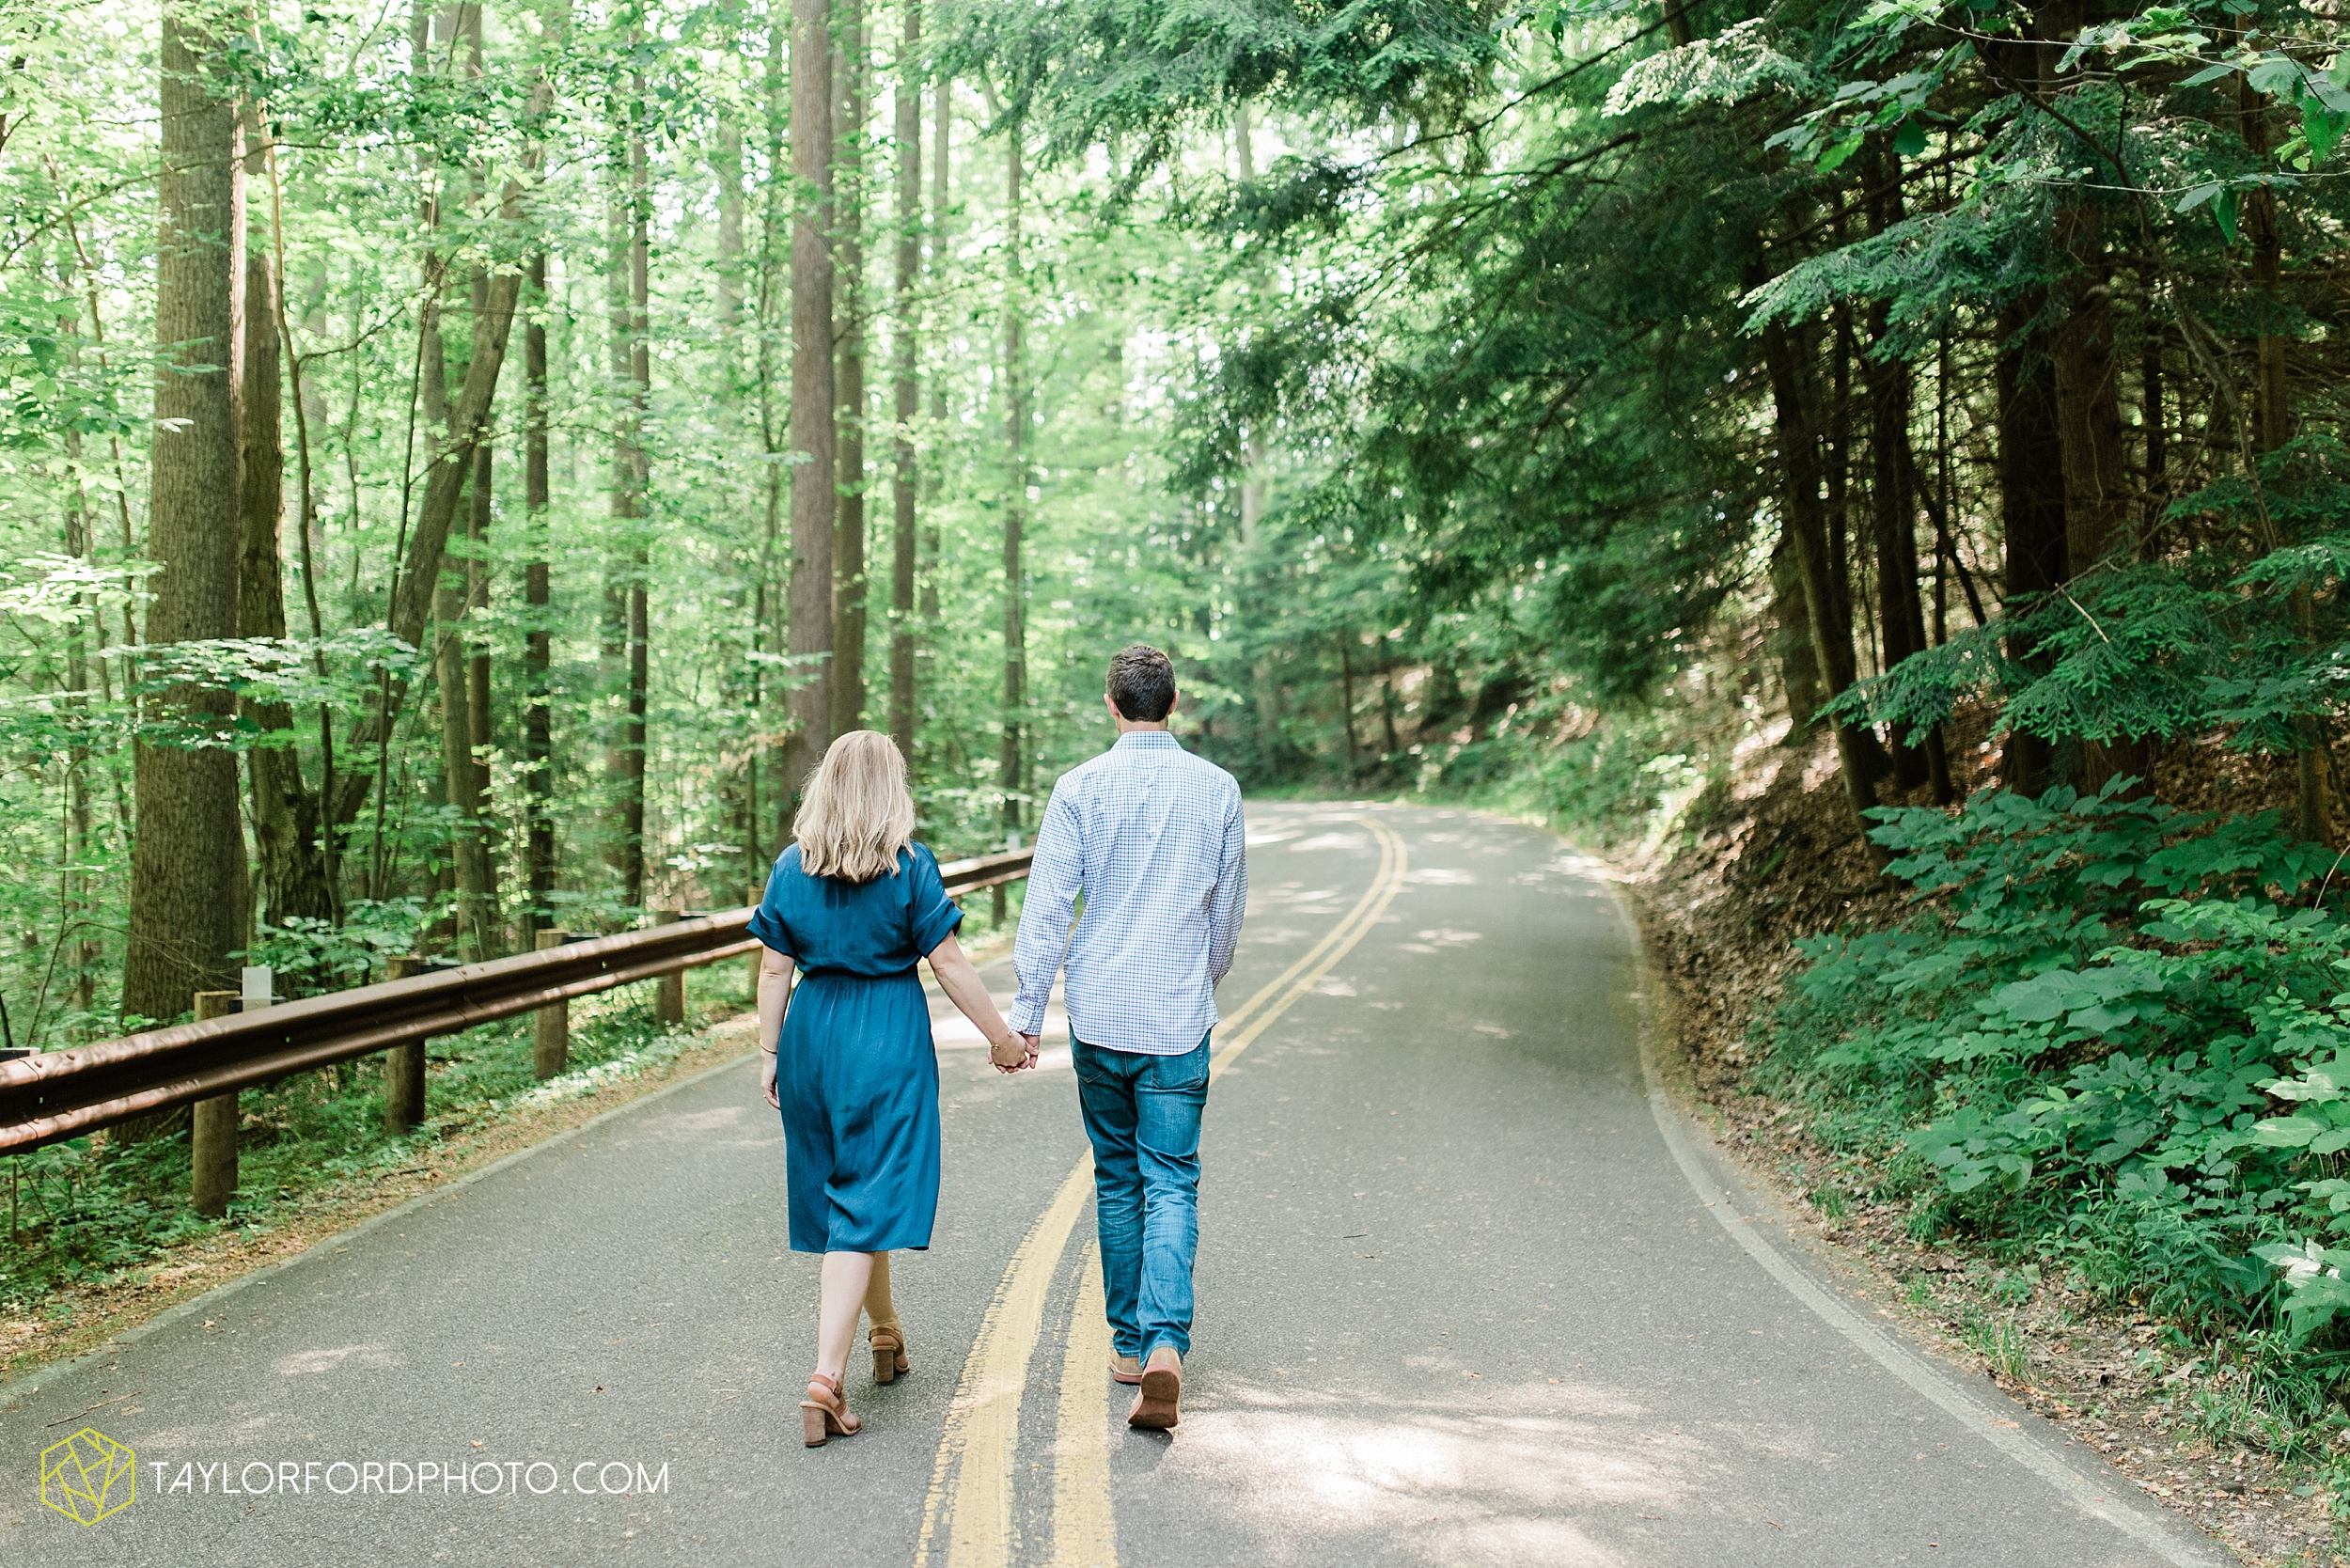 margo-evan-kohler-south-chagrin-reservation-chagrin-falls-cleveland-ohio-engagement-wedding-photographer-Taylor-Ford-Photography_8177.jpg